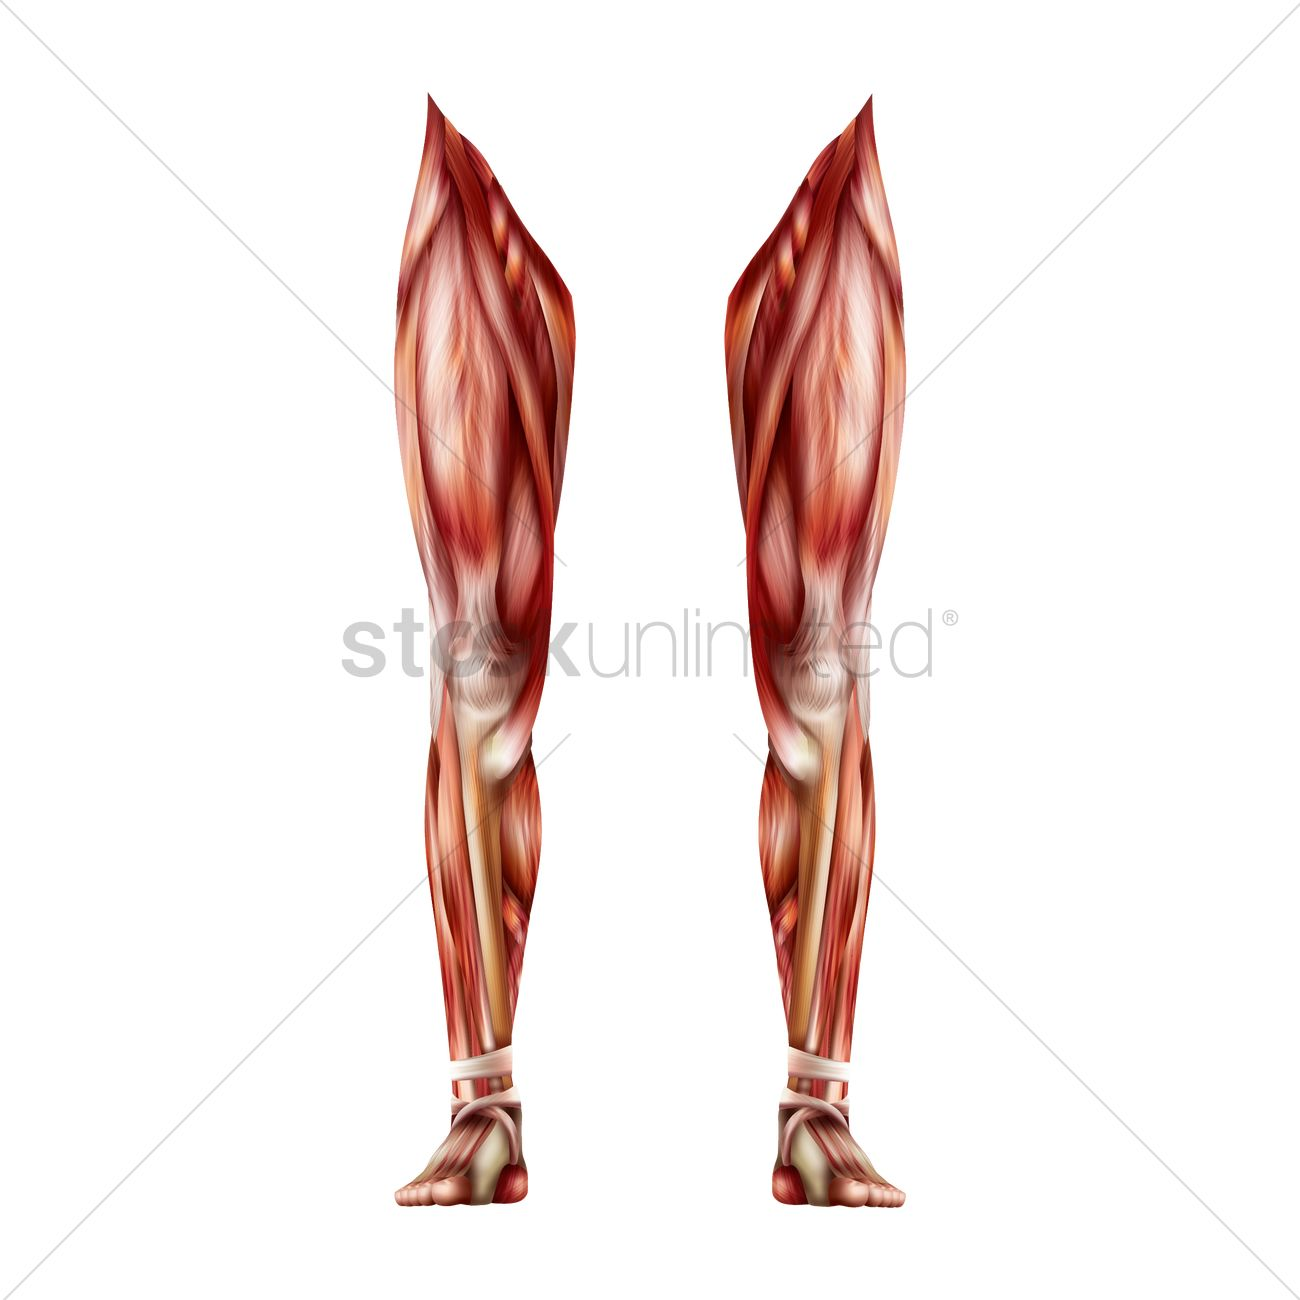 Leg Muscles Vector Image 1814980 Stockunlimited